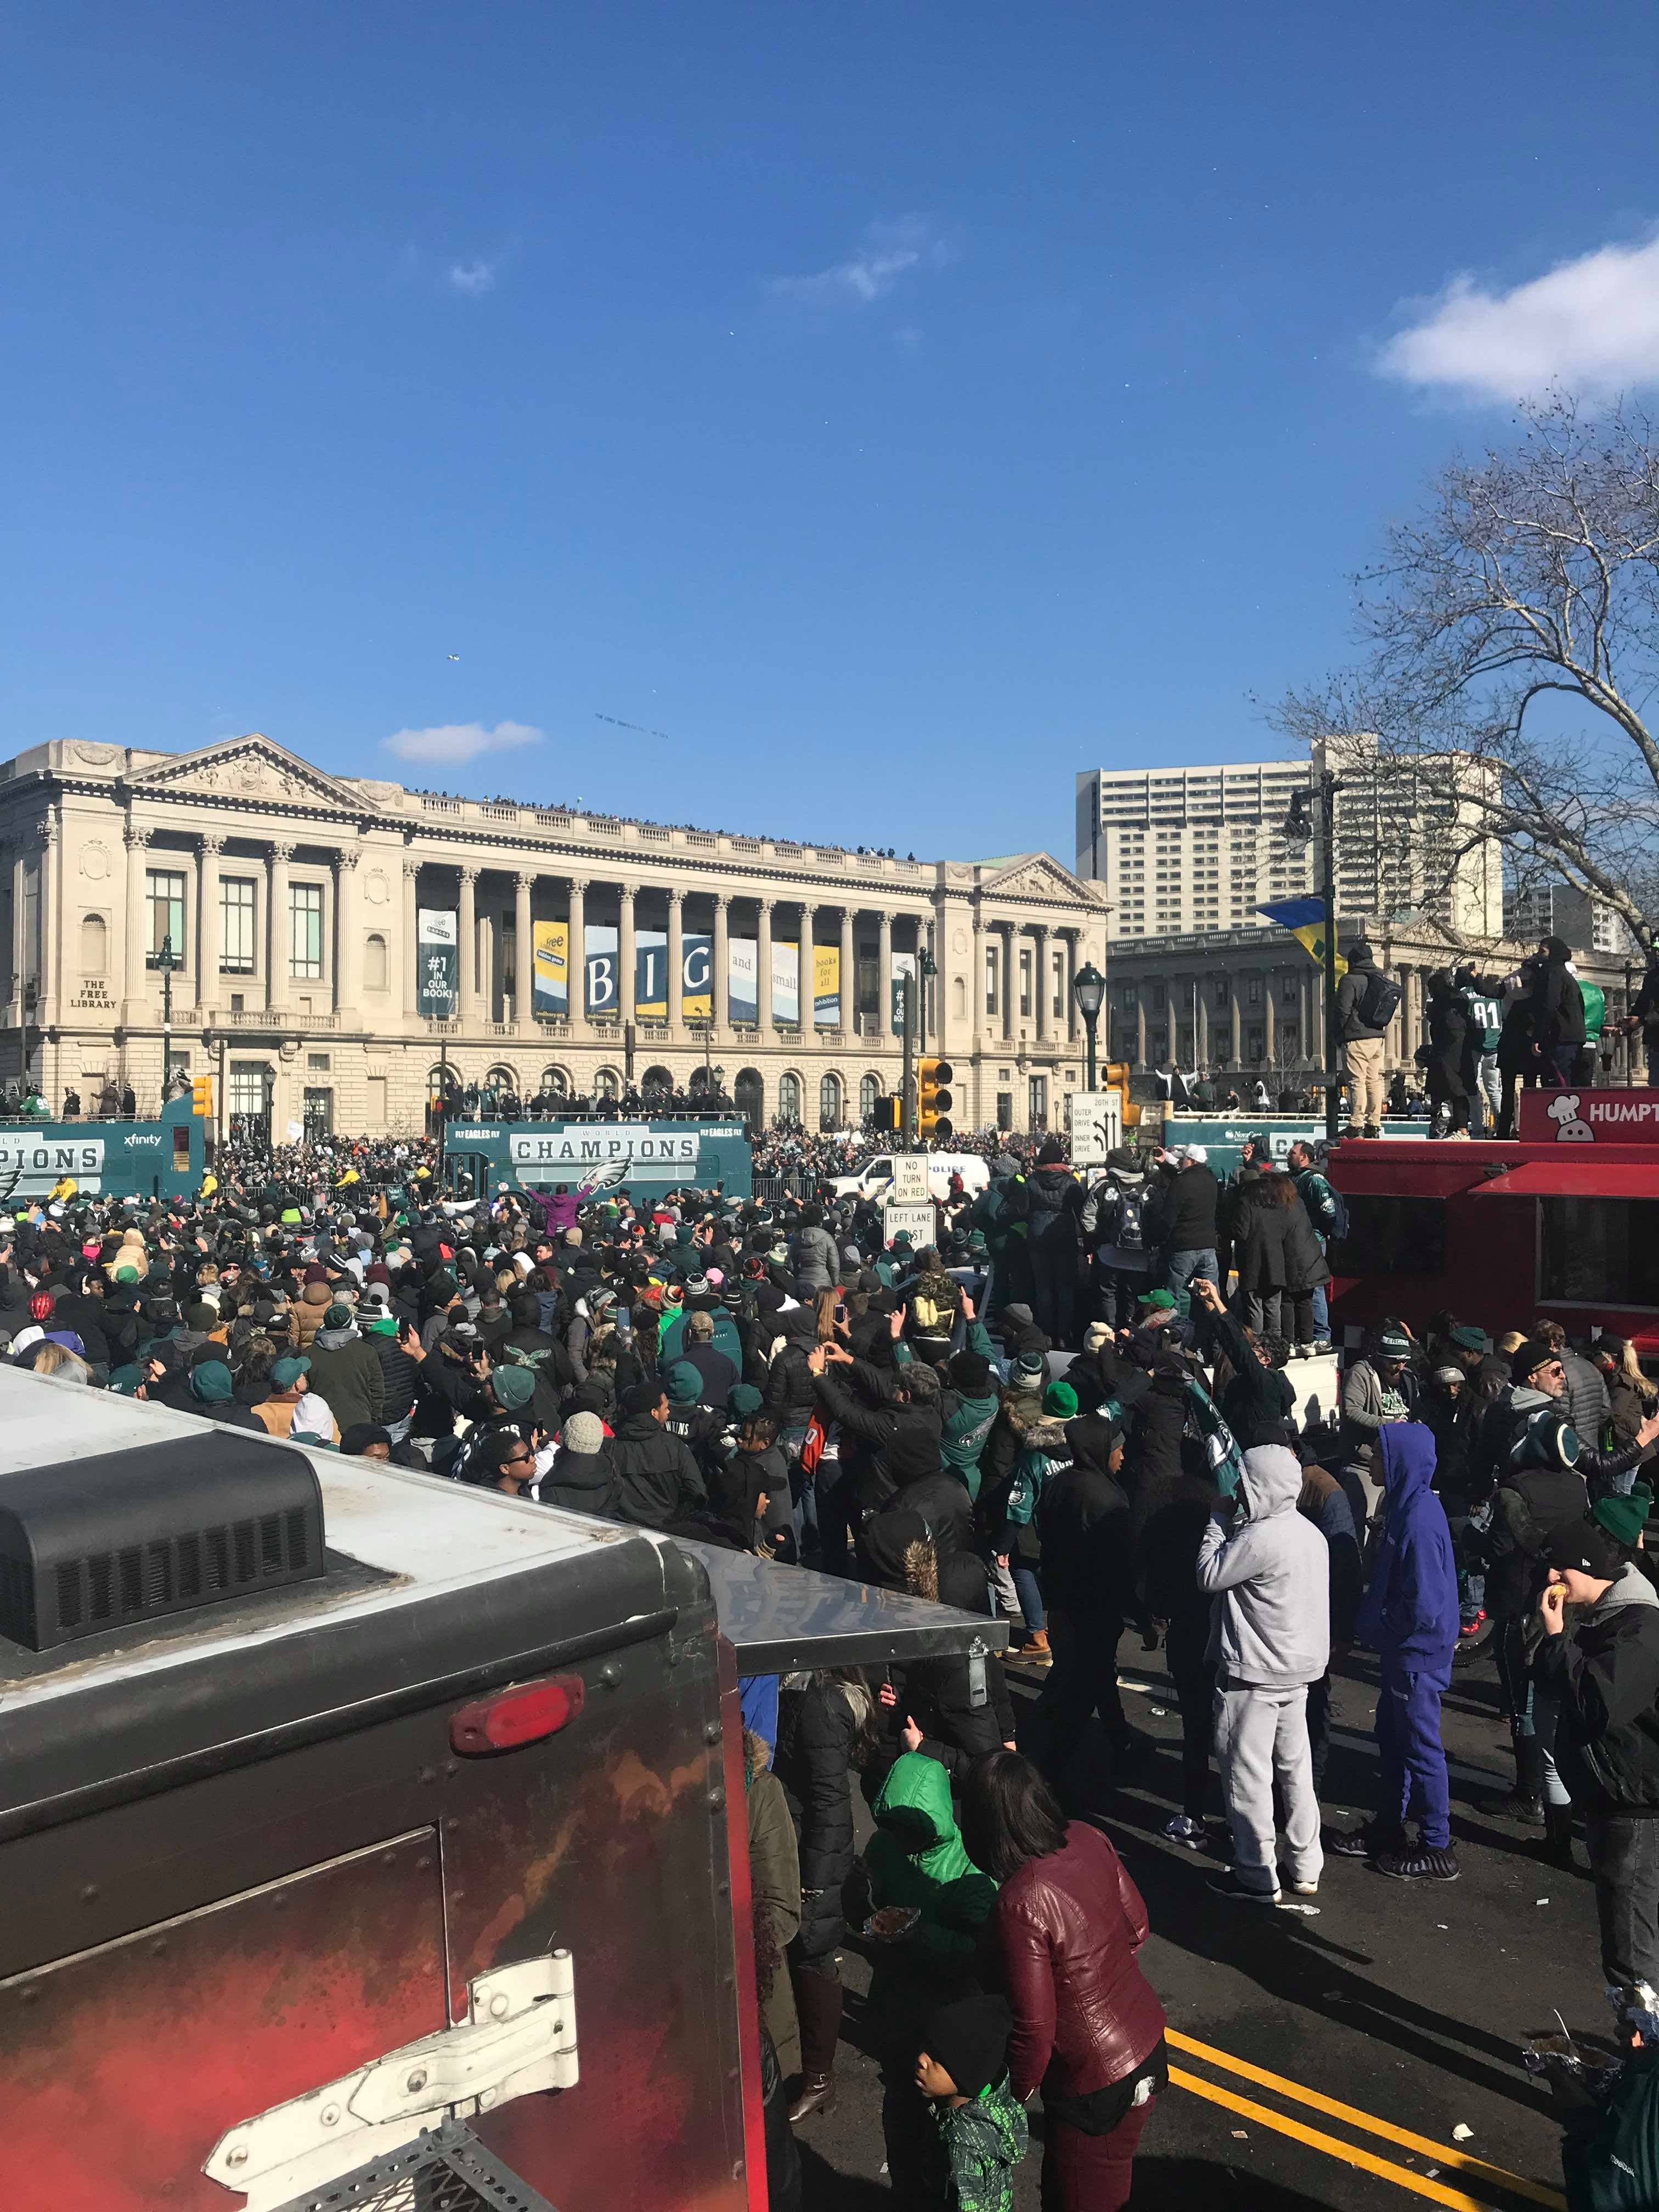 Eagles Fans Crowd Next to Food Trucks. Credit: Tom Gannon/Nick's Roast Beef